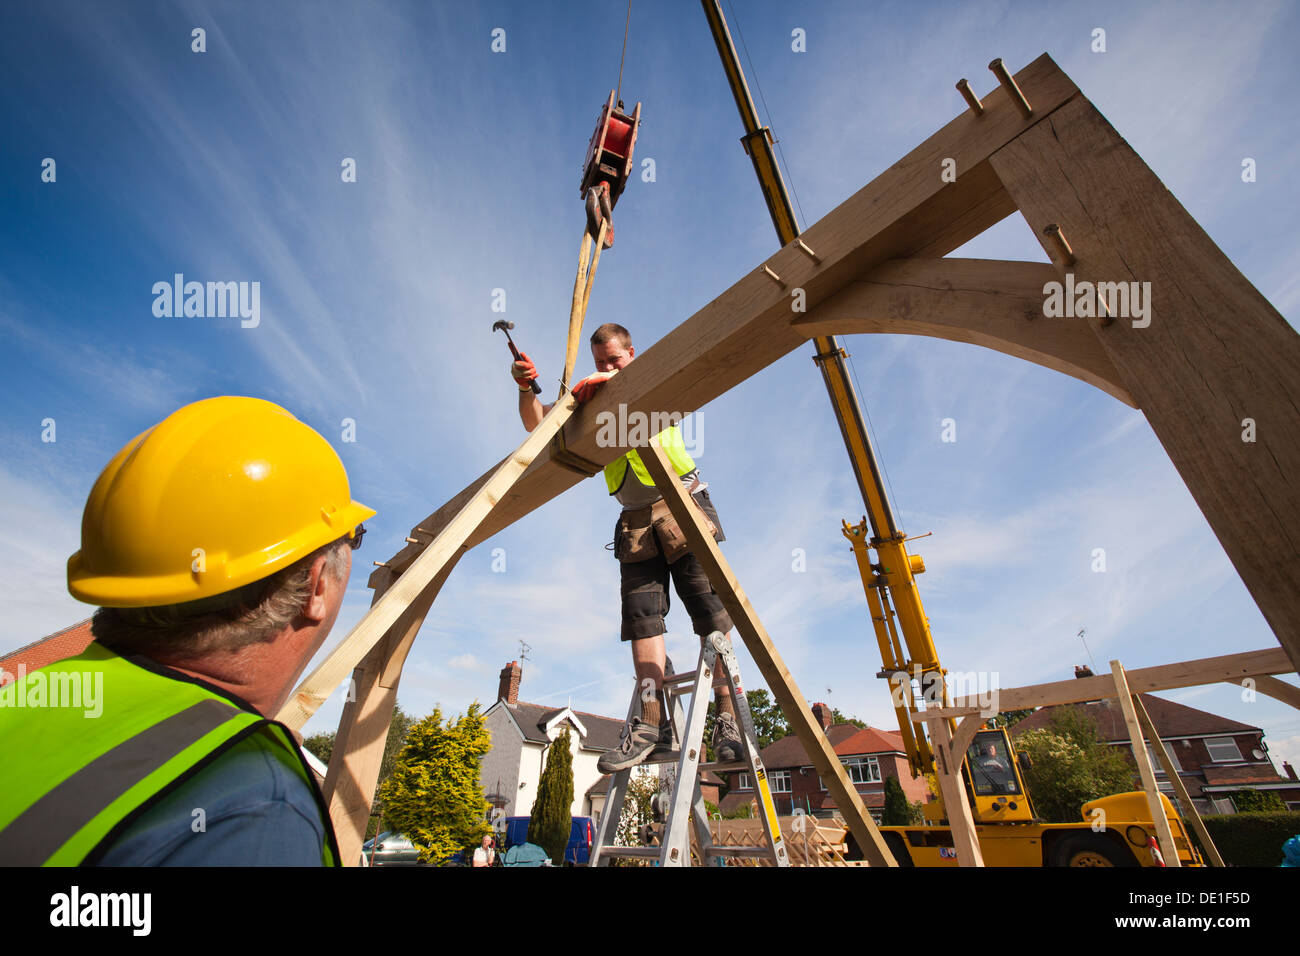 self building house, constructing green oak timber framed structure, using hired crane to lift heavy wooden frame - Stock Image